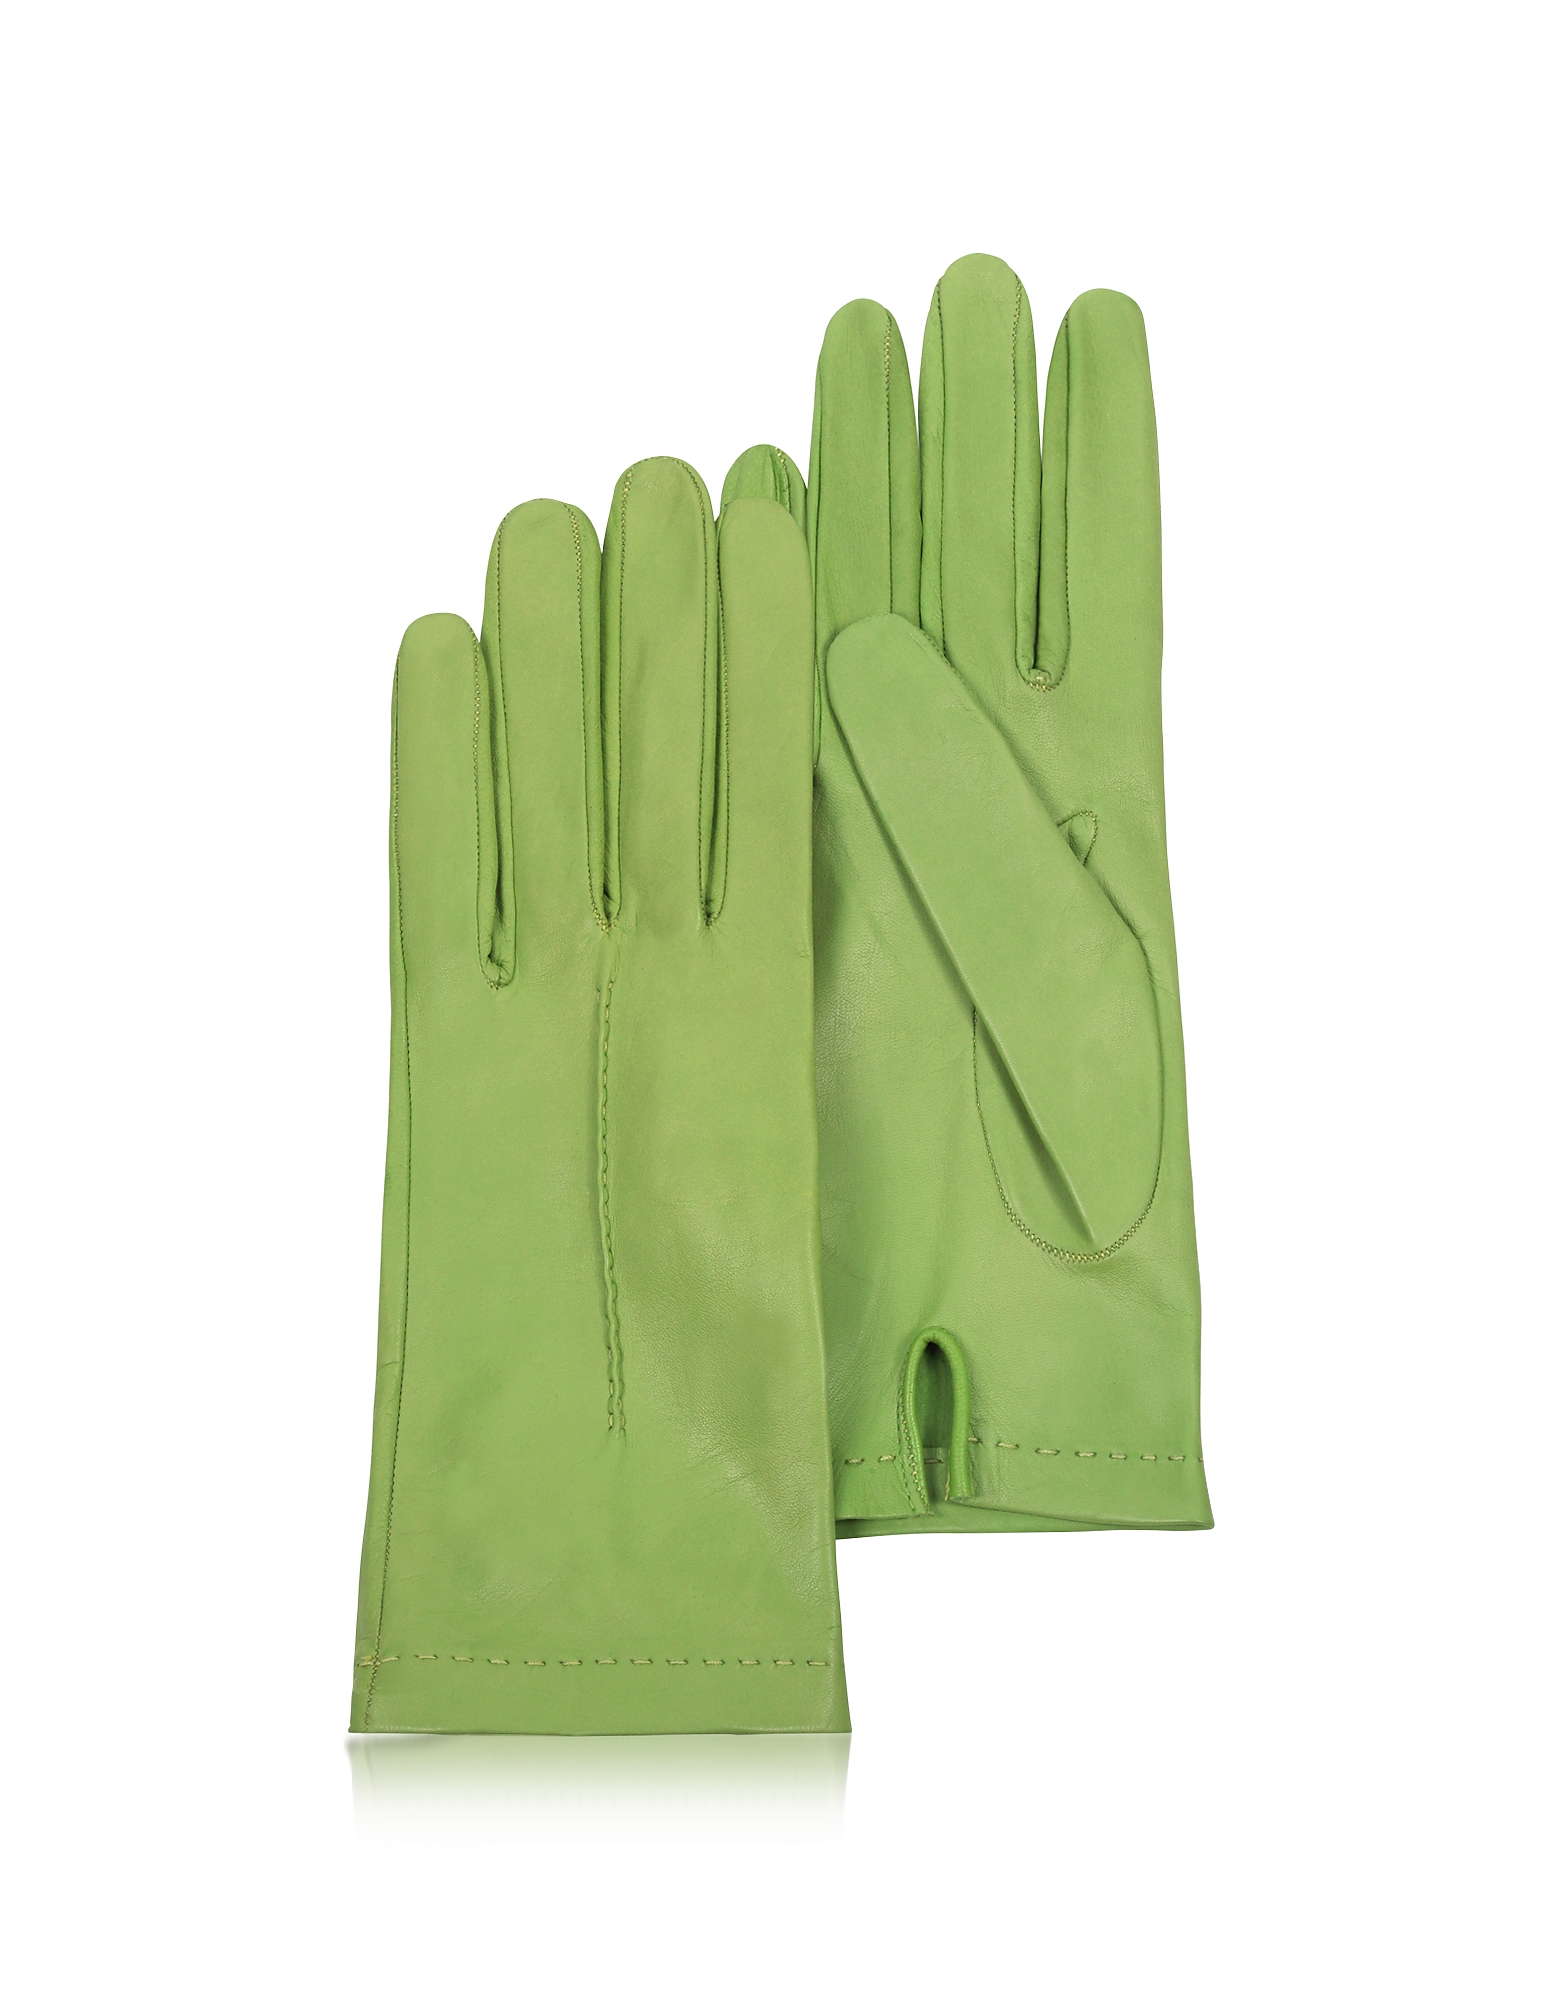 Forzieri Women's Gloves, Women's Mint Unlined Italian Leather Gloves